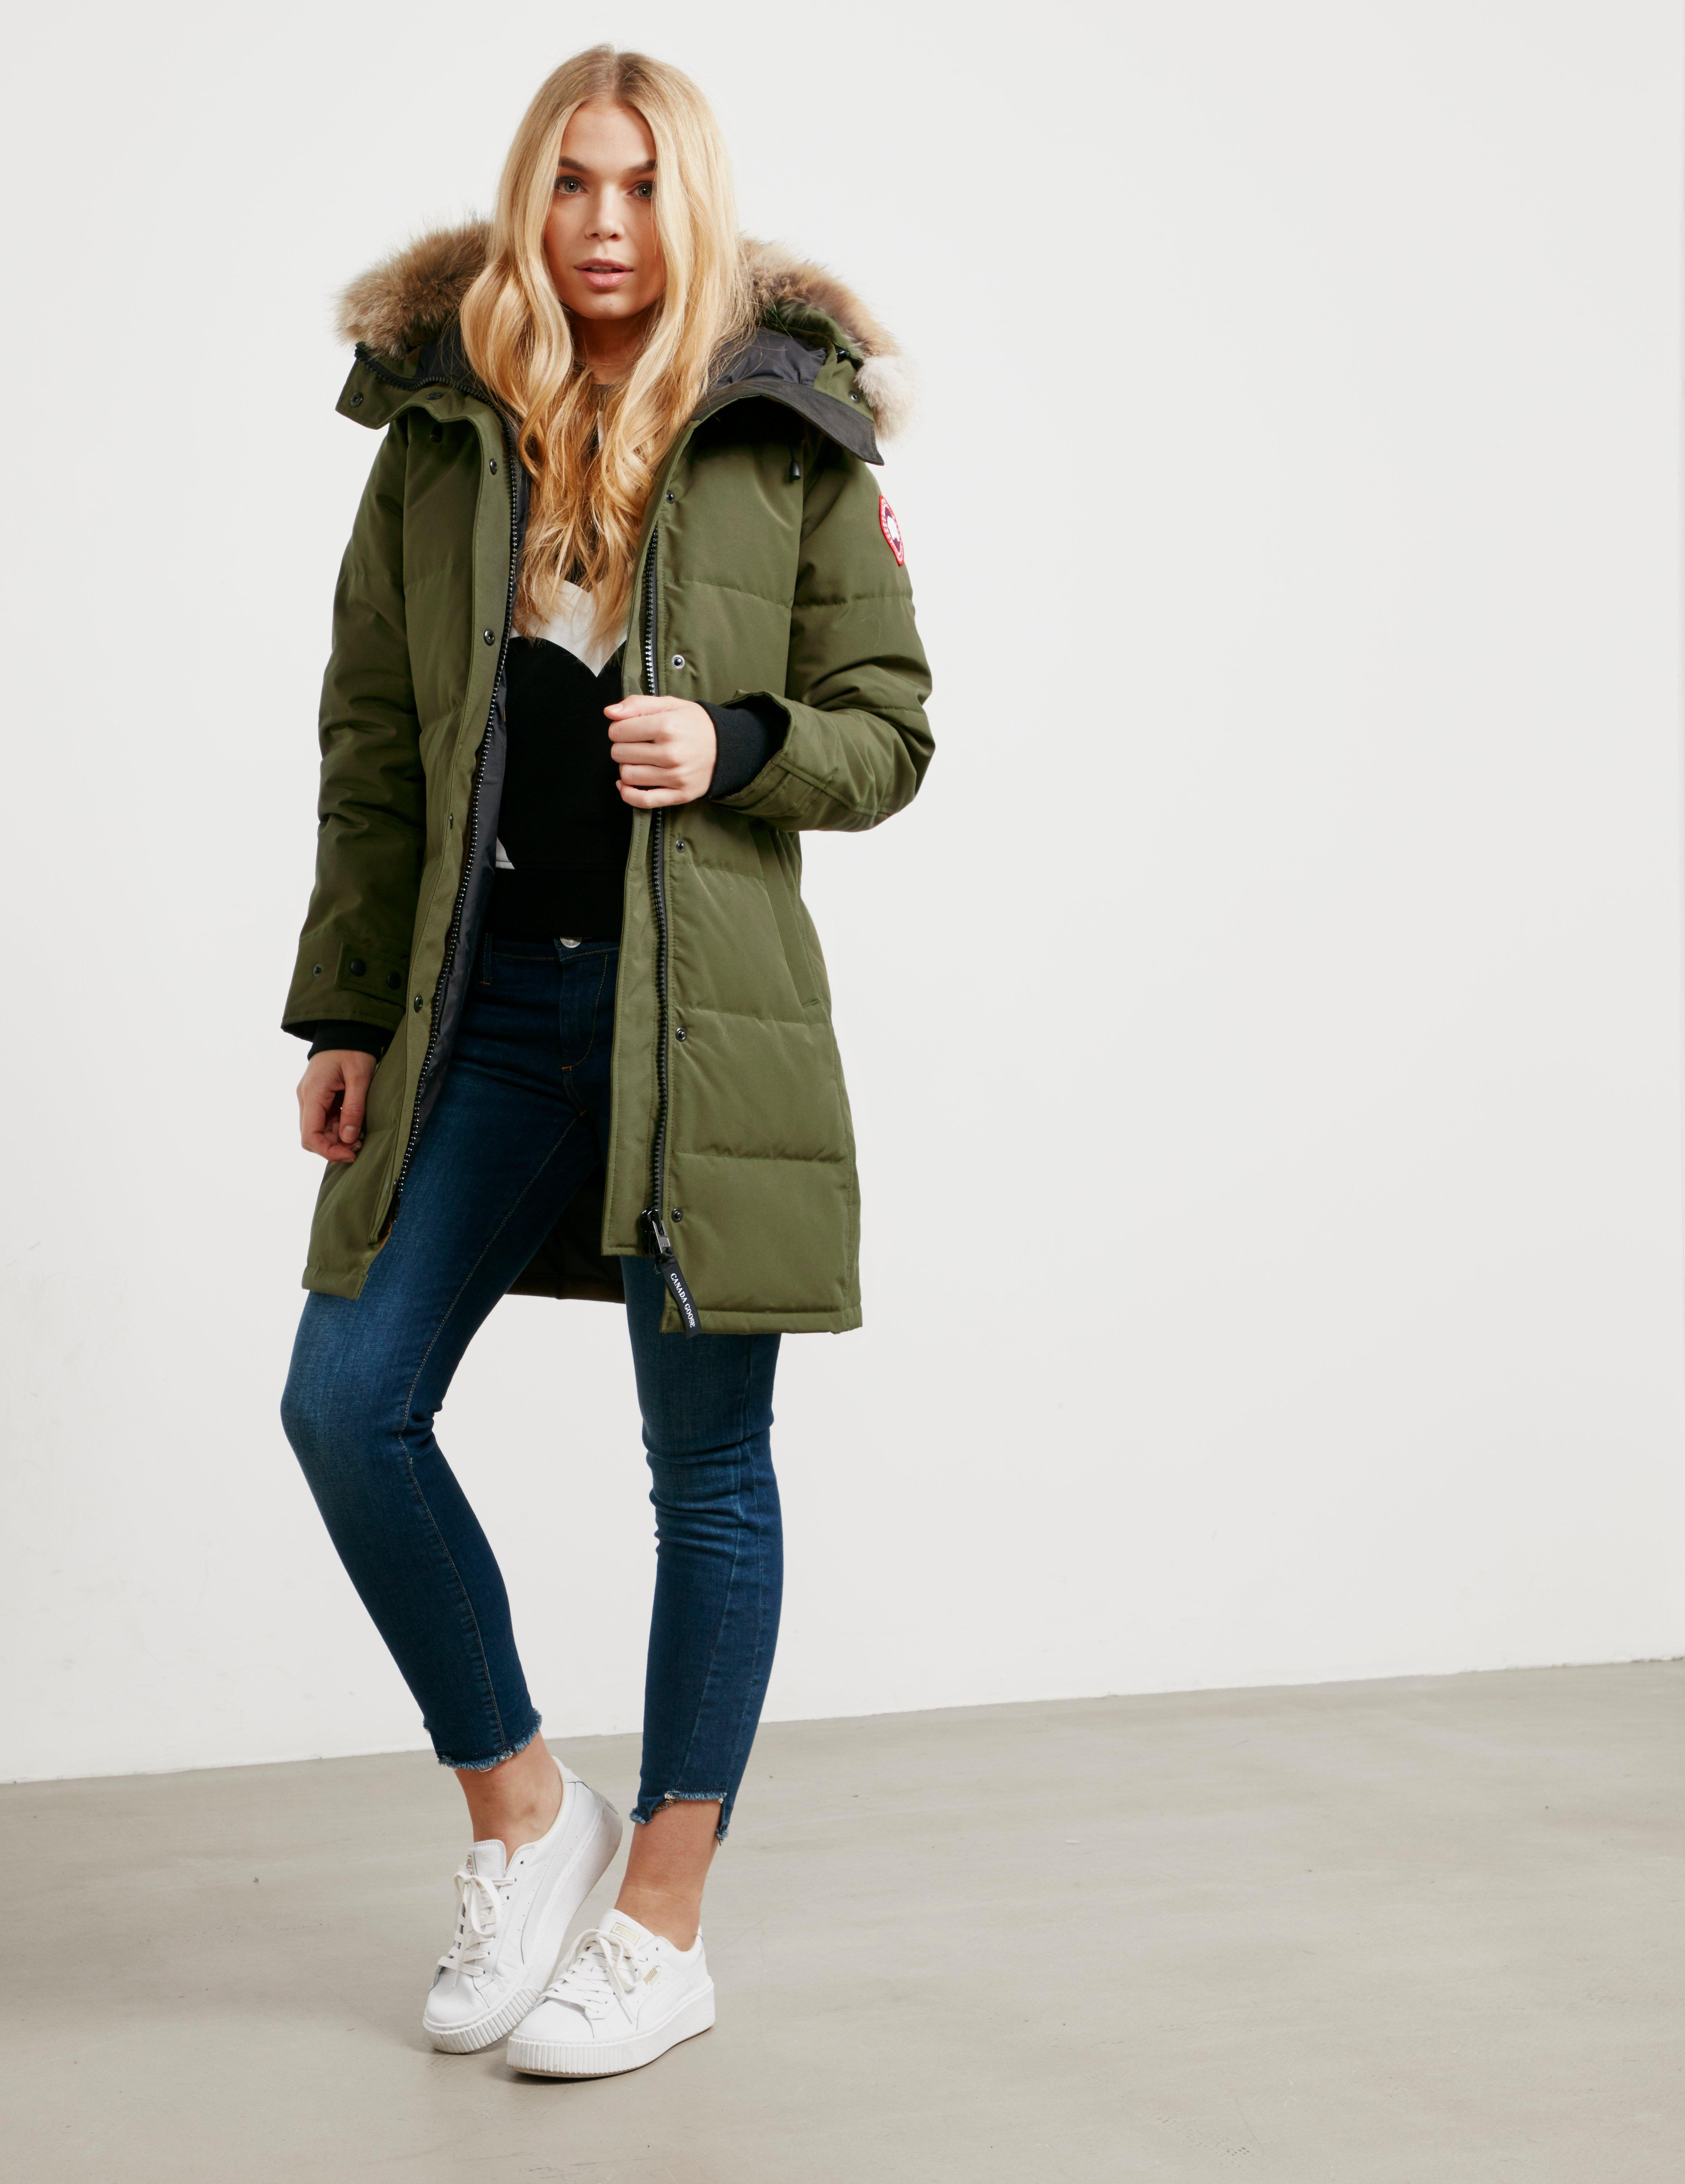 b02a9fc6648 ... buy lyst canada goose womens shelburne padded parka jacket green in  green save 5.832628909551985 48df0 01ec2